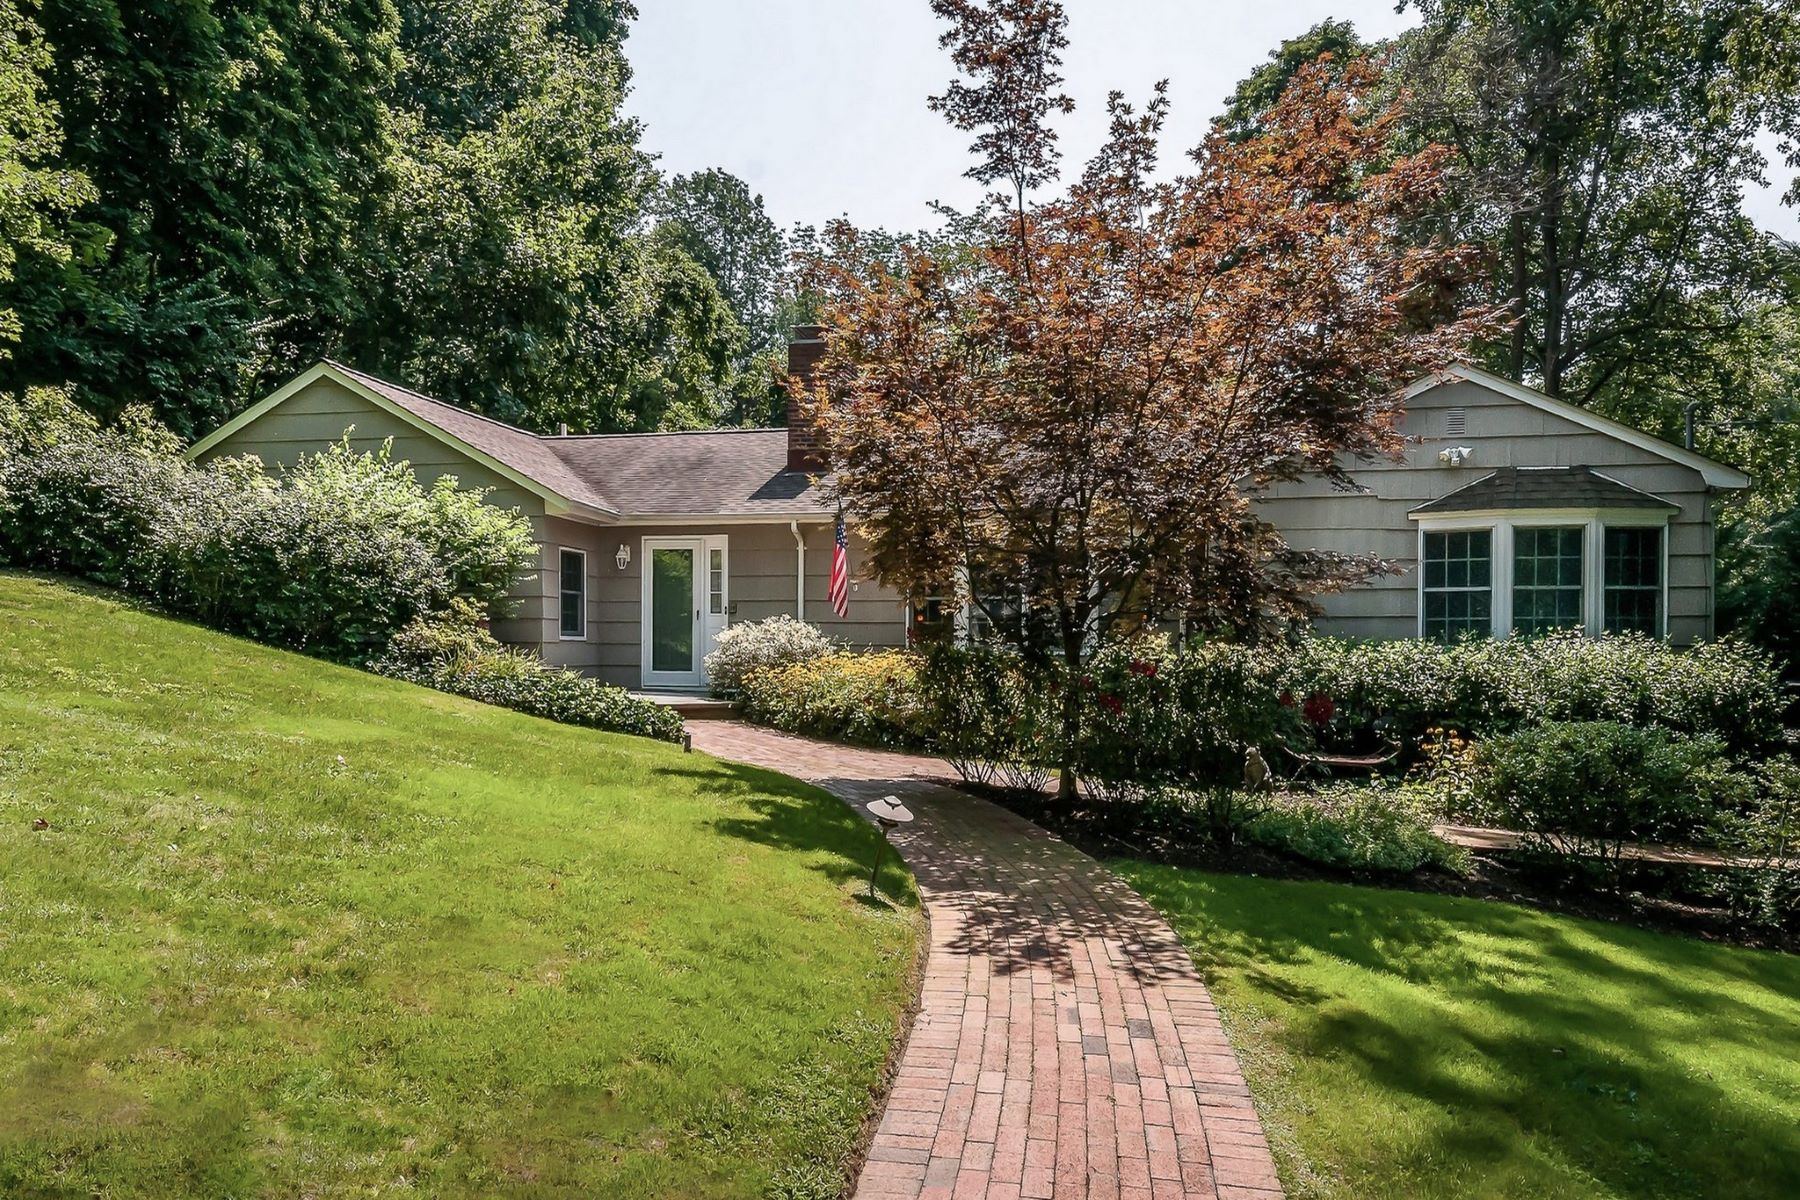 Single Family Homes for Active at Roslyn Estates 1 Hickory Hill Roslyn Estates, New York 11576 United States